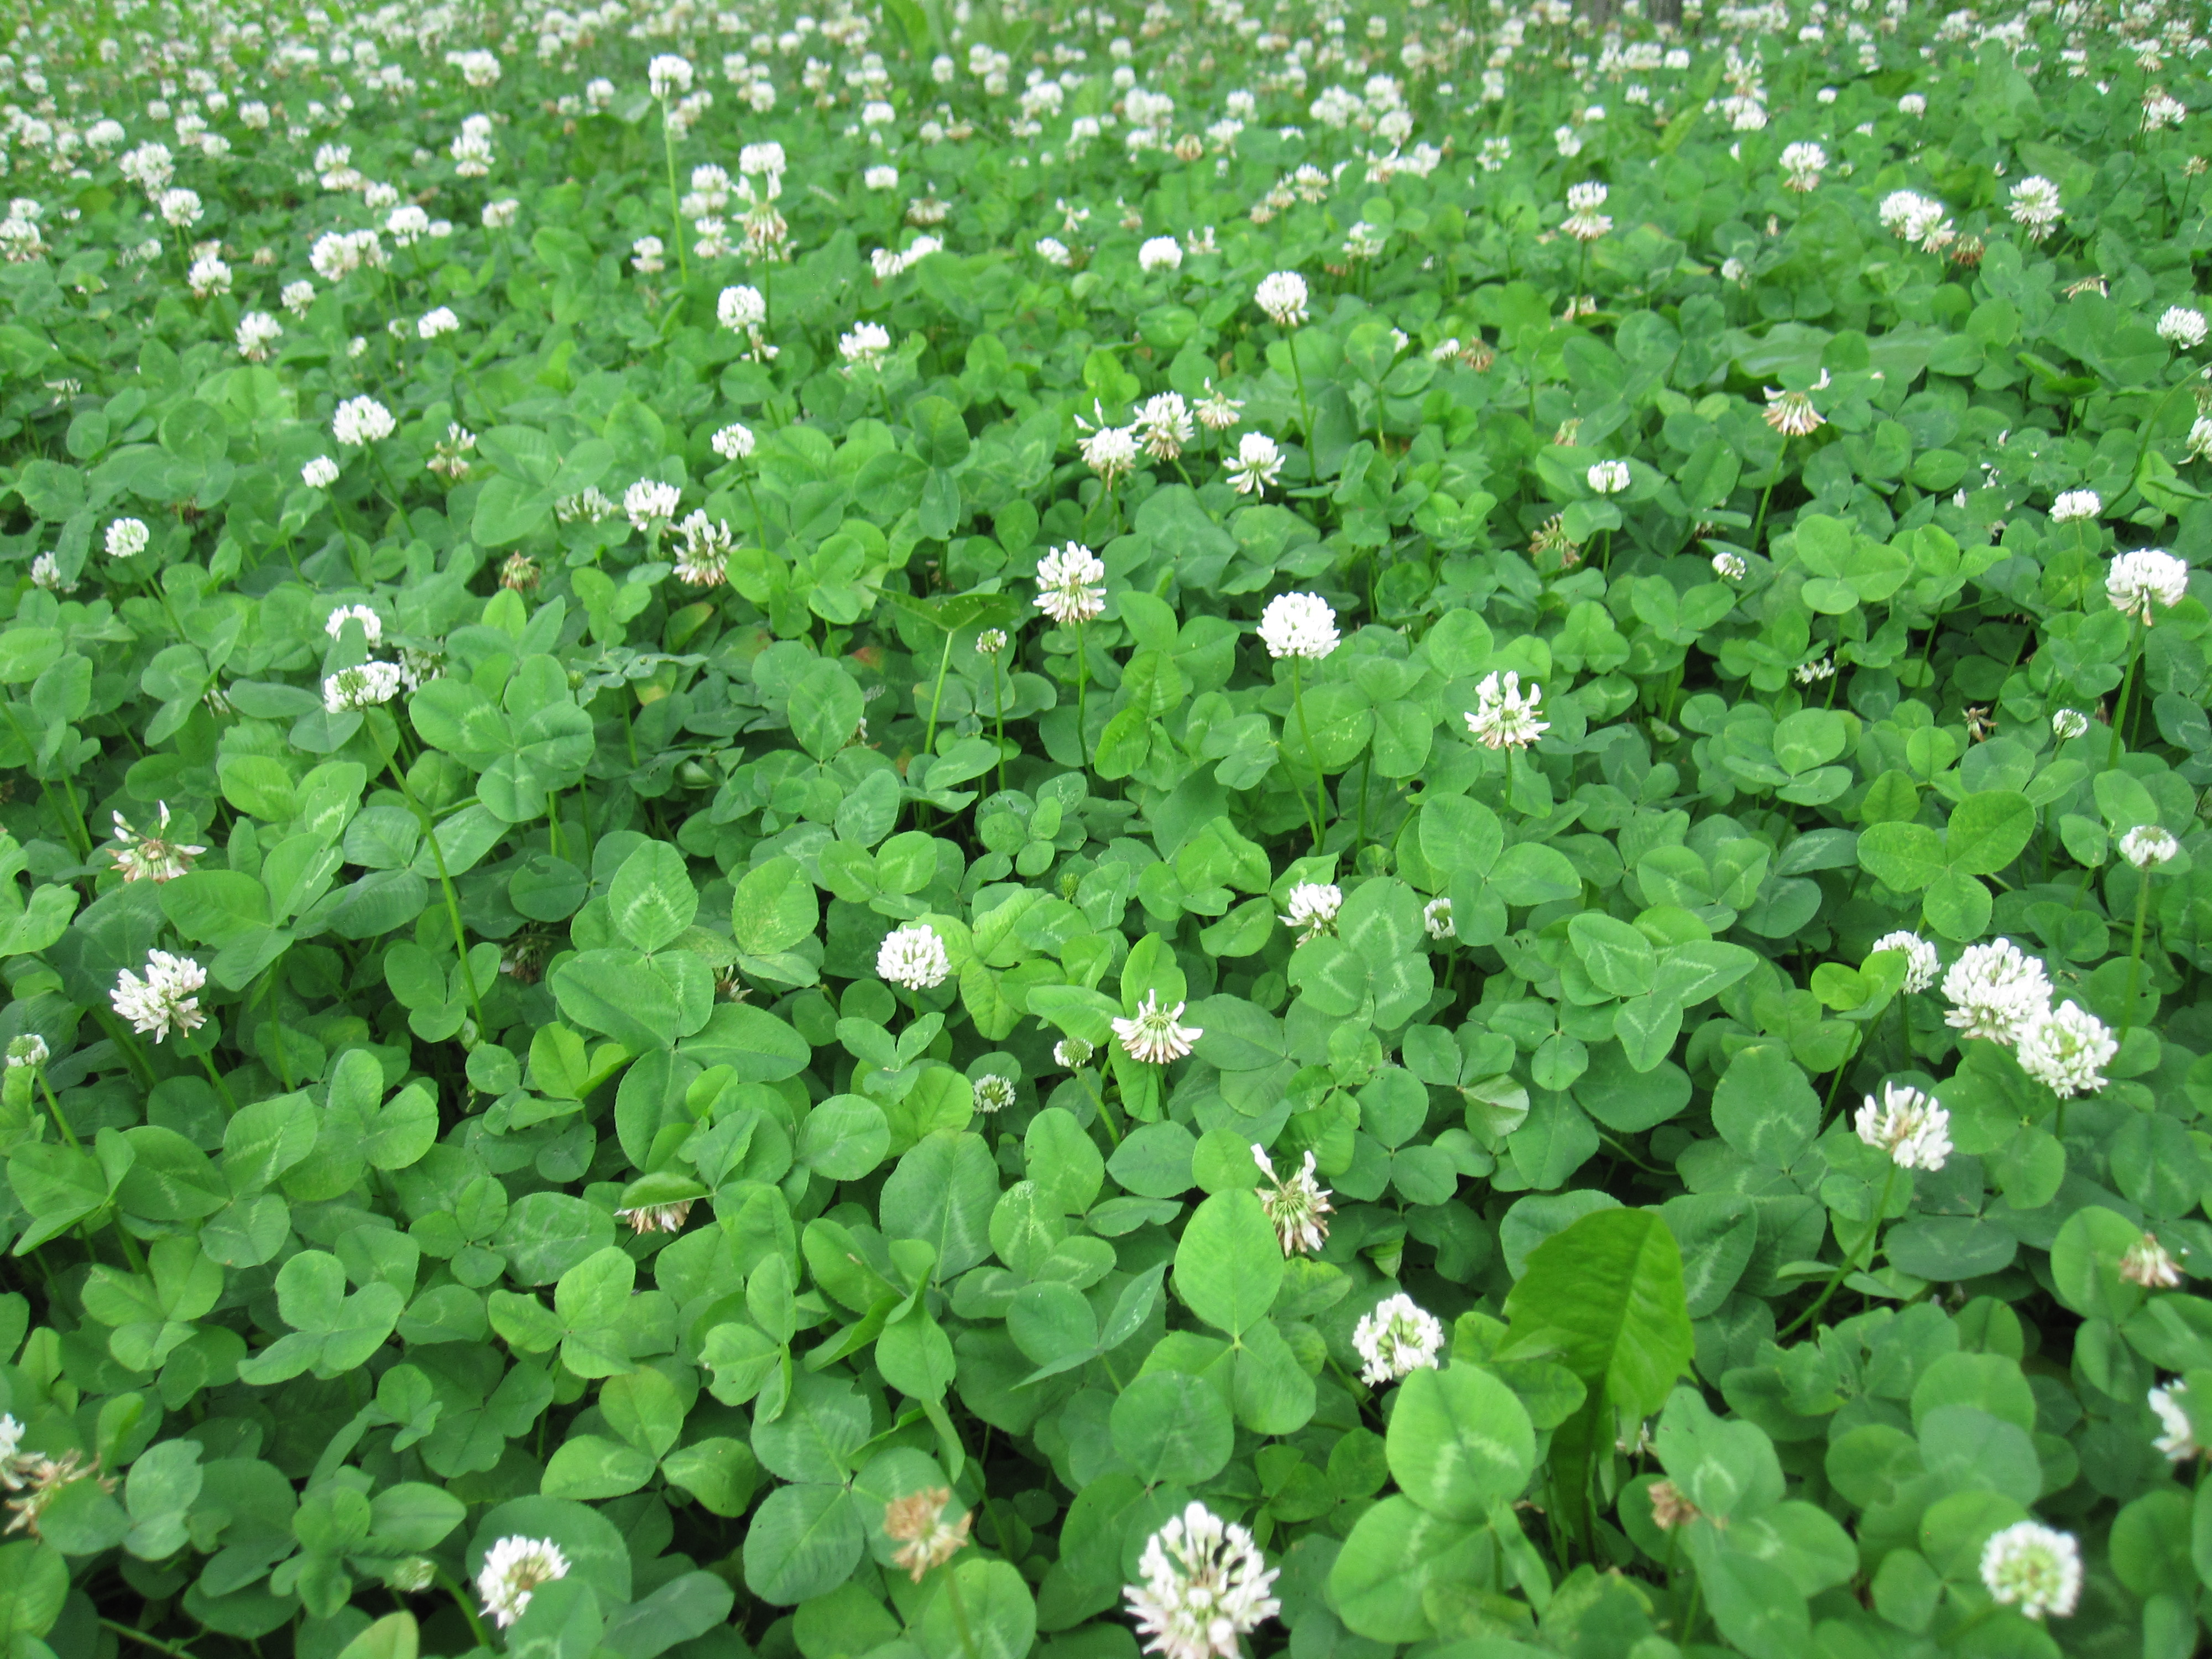 Forest clover photo